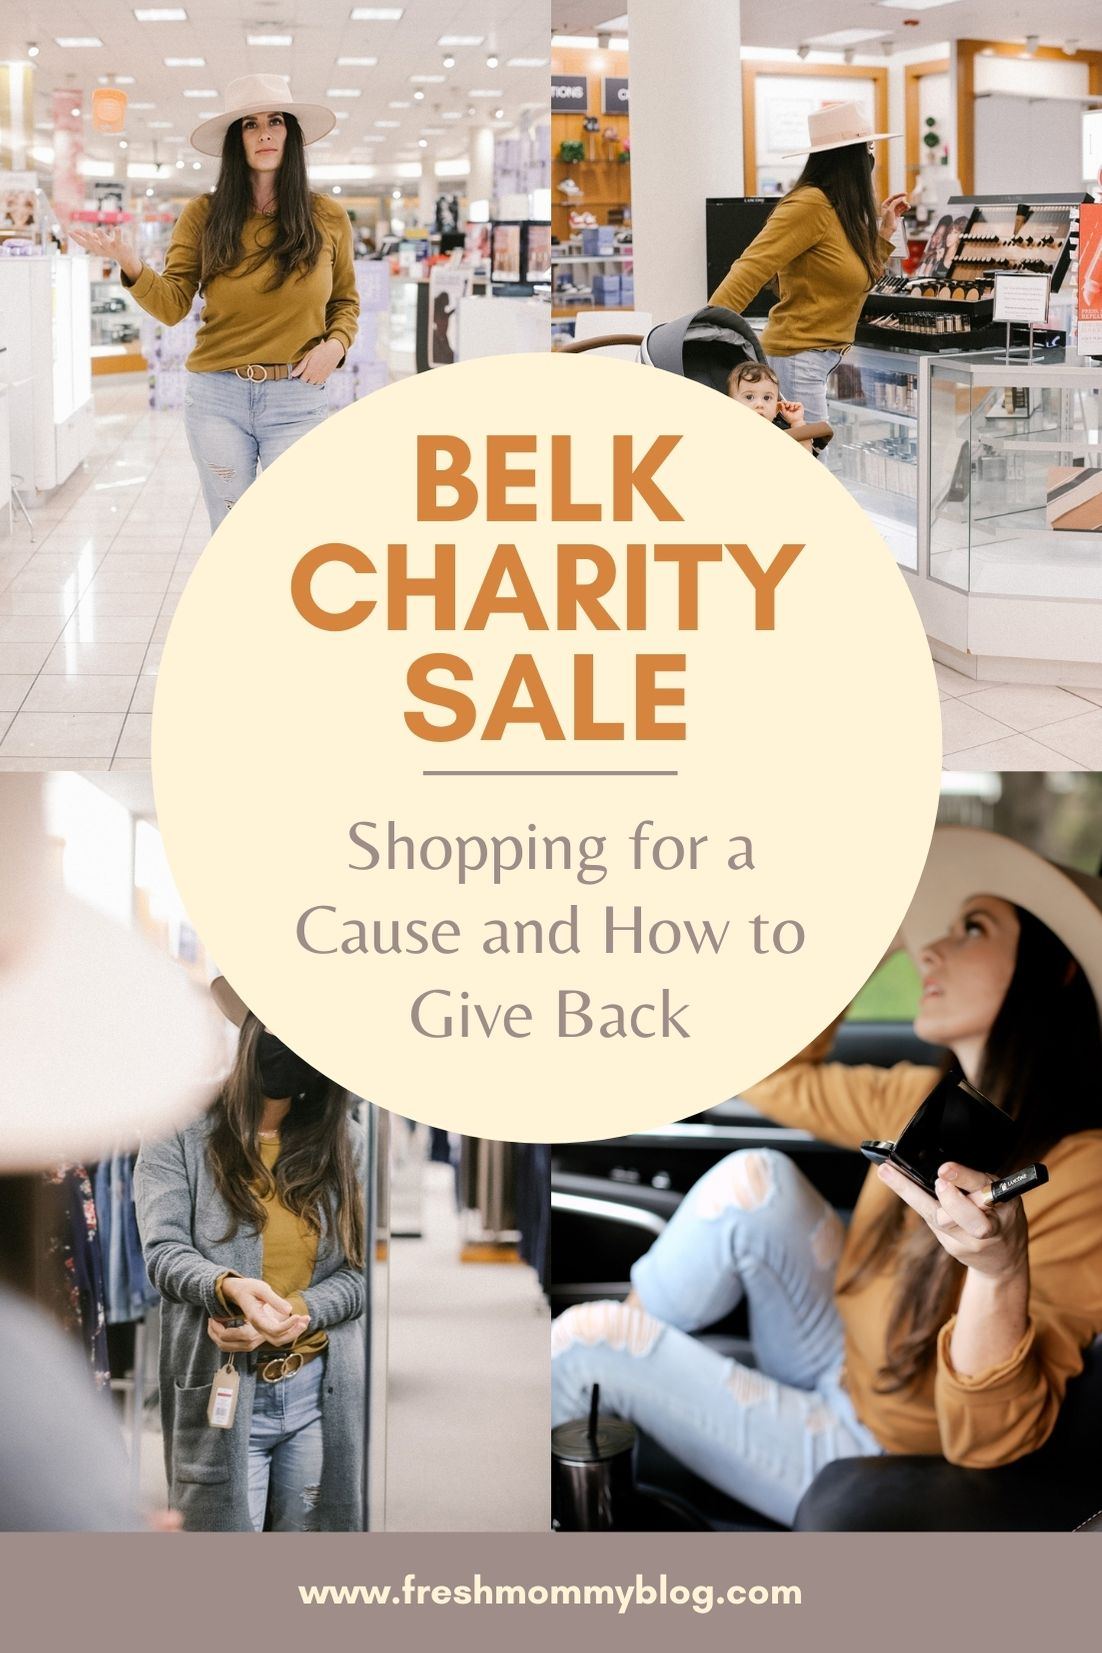 Belk Charity Sale and How to Give Back! Tabitha Blue of Fresh Mommy Blog